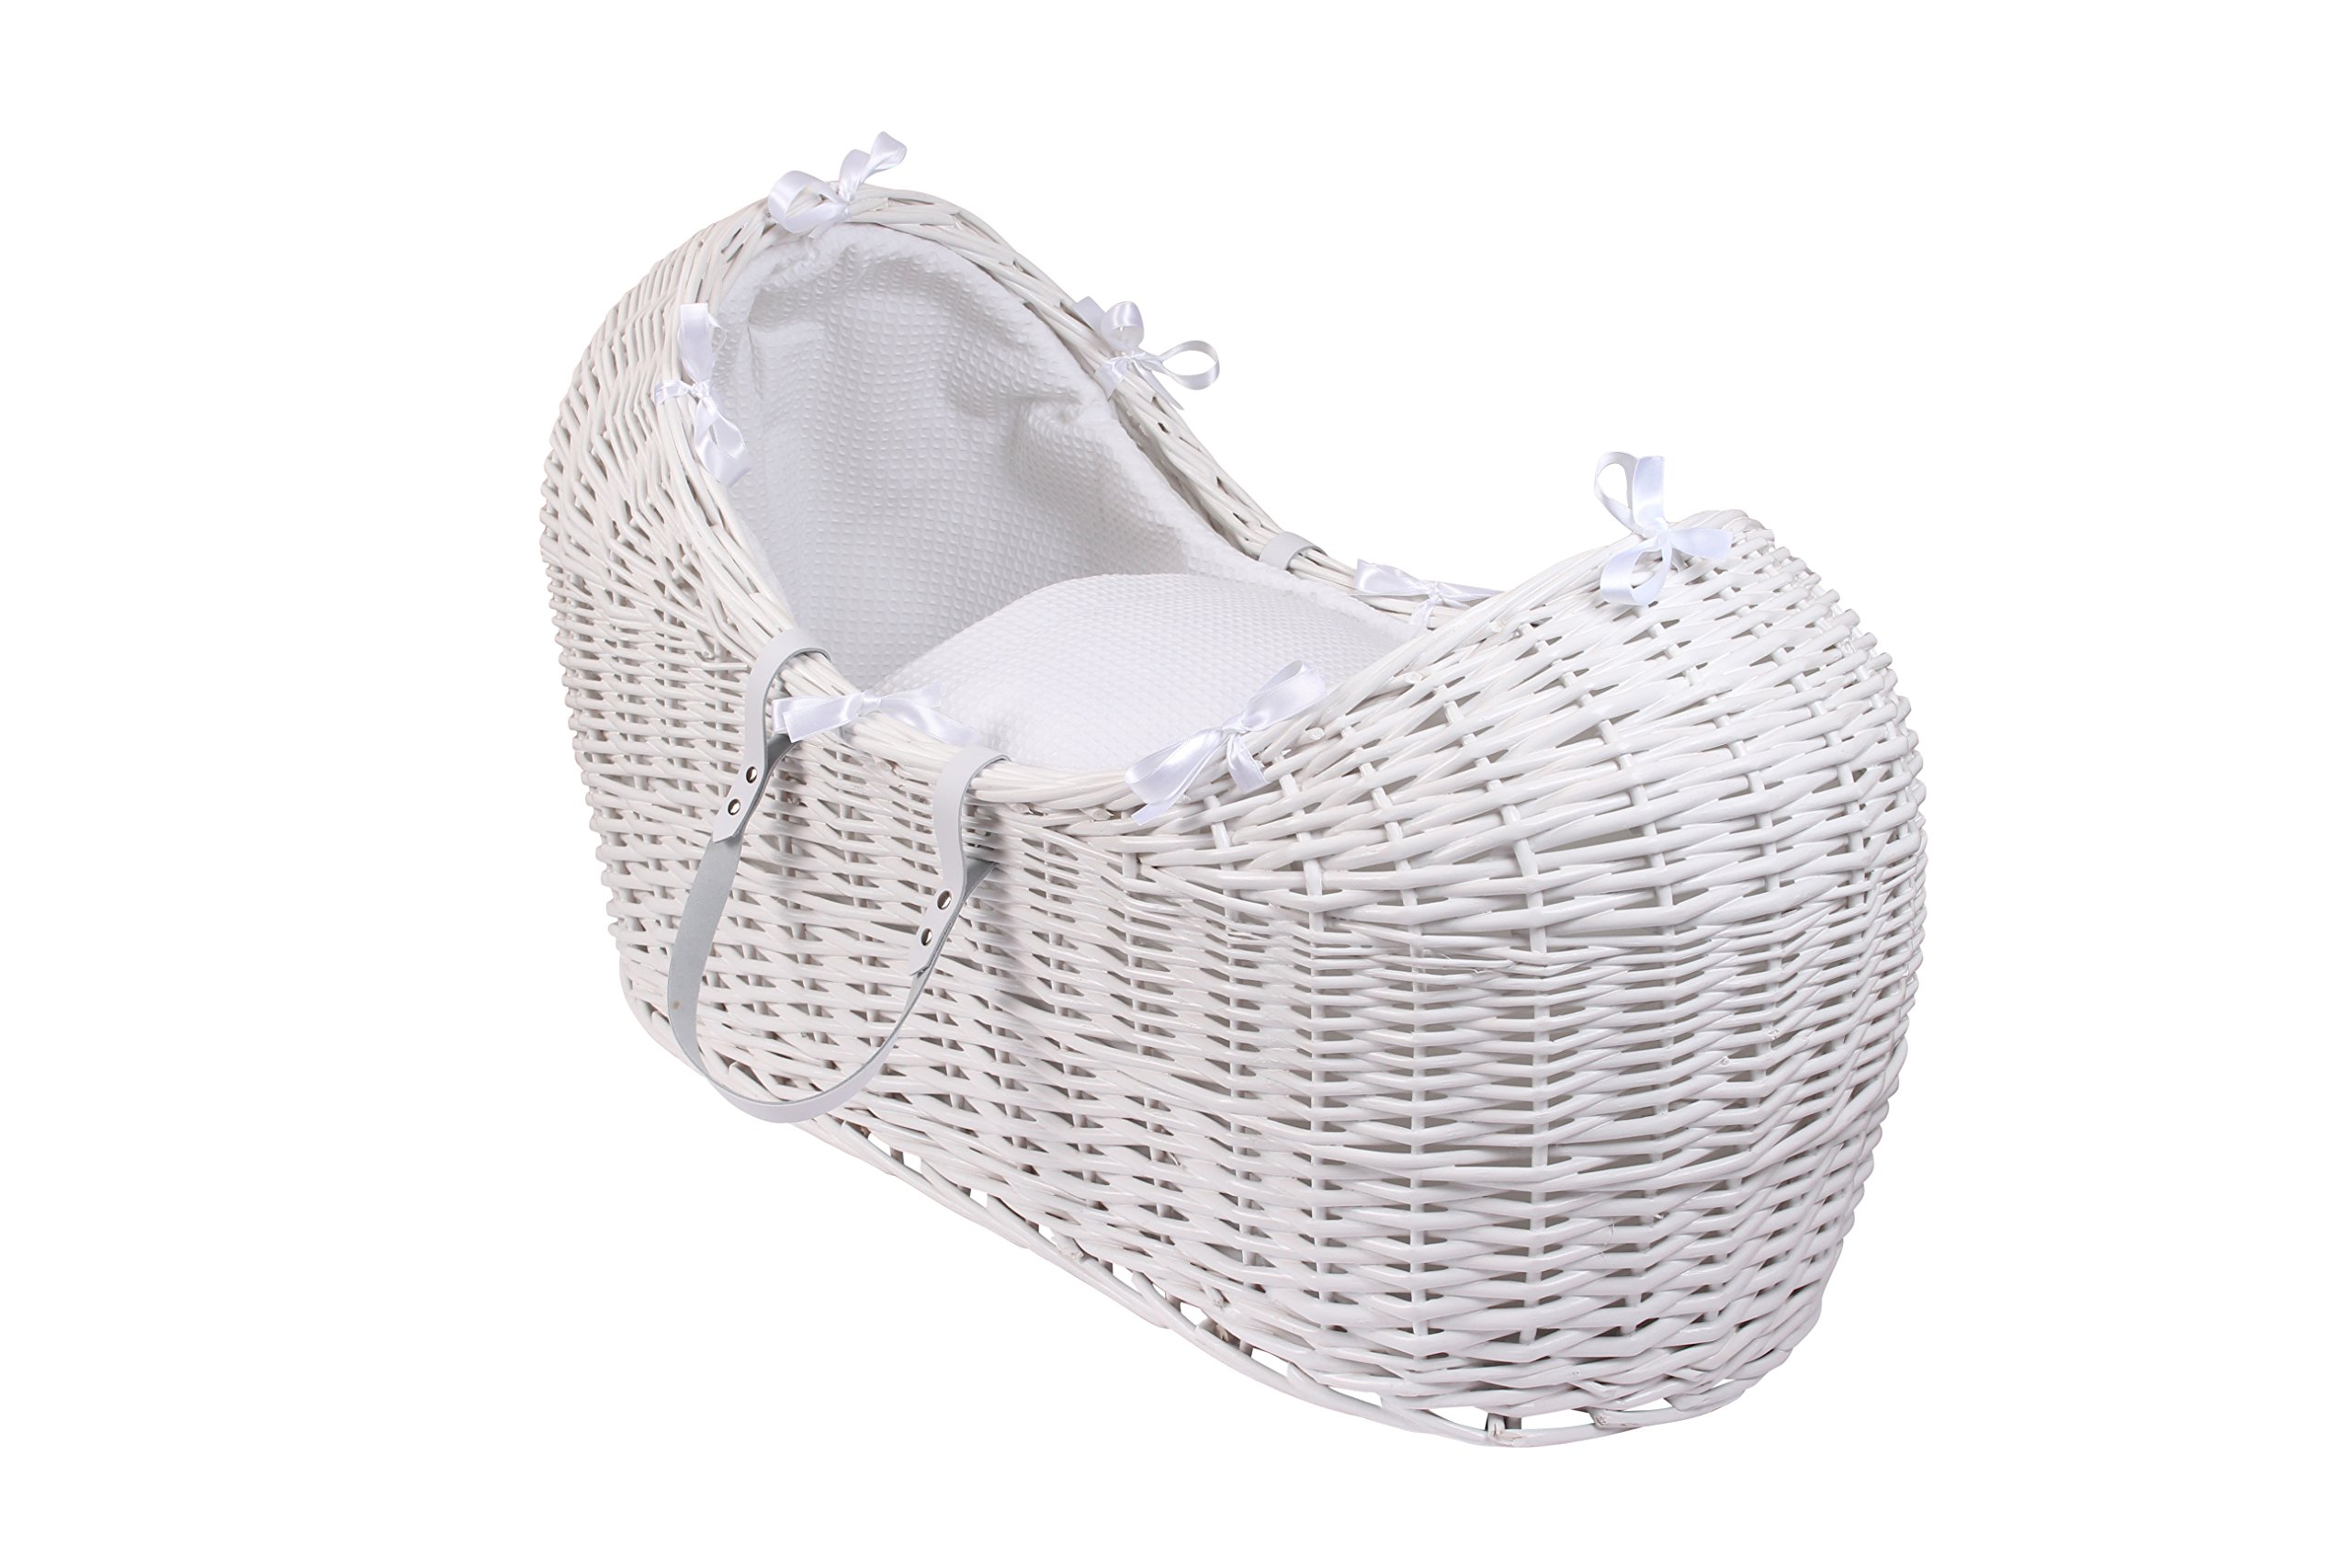 Clair de Lune Waffle White Wicker Noah Pod, White  A contemporary Moses basket design exclusive to Clair de Lune that creates a cocooned & calming sleeping space for baby. Comes complete with padded liner, delicately embroidered 2.0 tog coverlet and mattress. Dressings are made from super soft and breathable Waffle cotton fabrics. 1